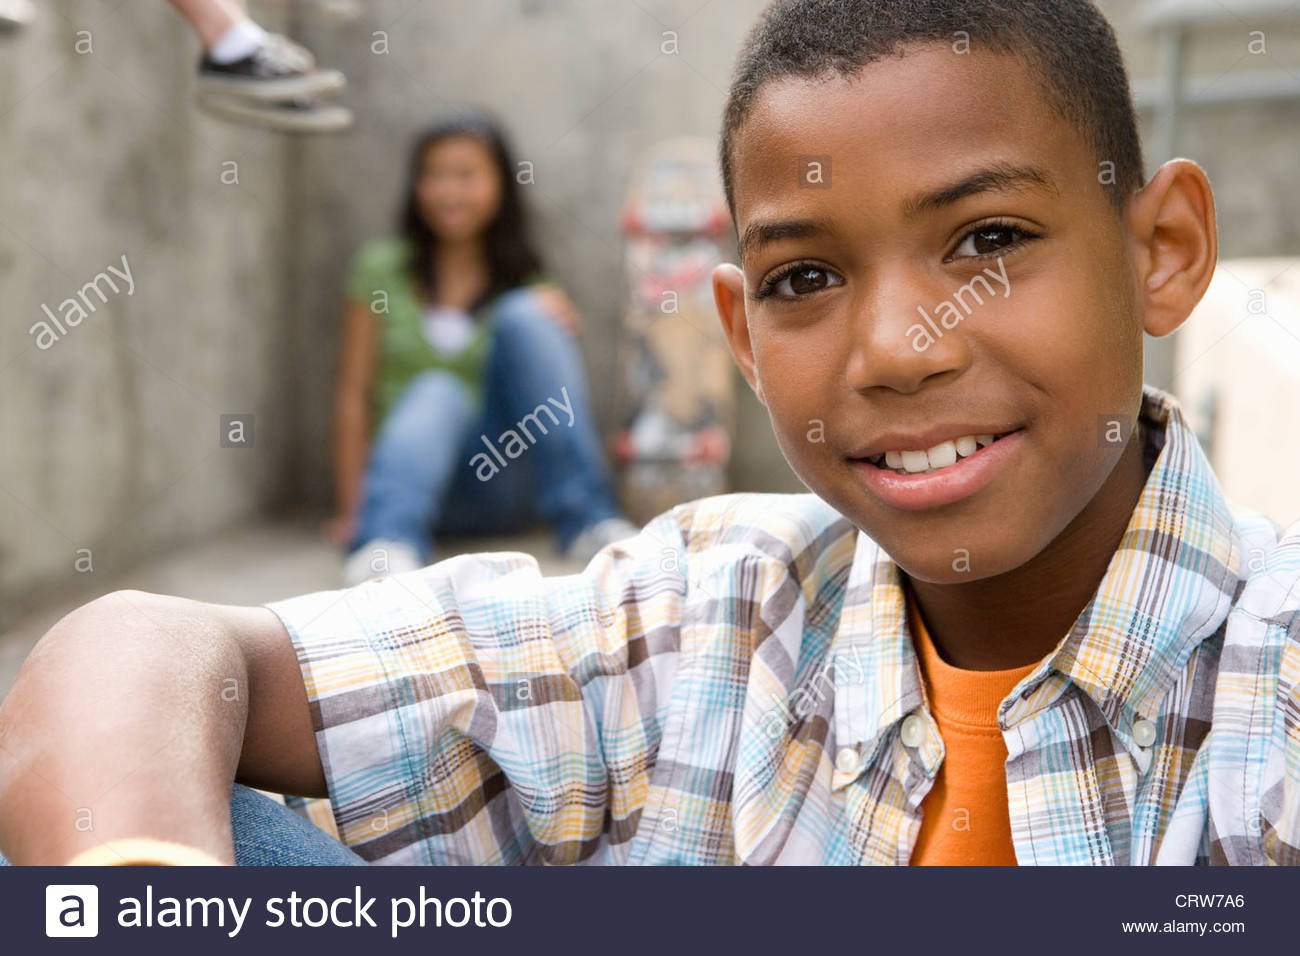 Boy (13-15) by friends, smiling, portrait, close-up - Stock Image